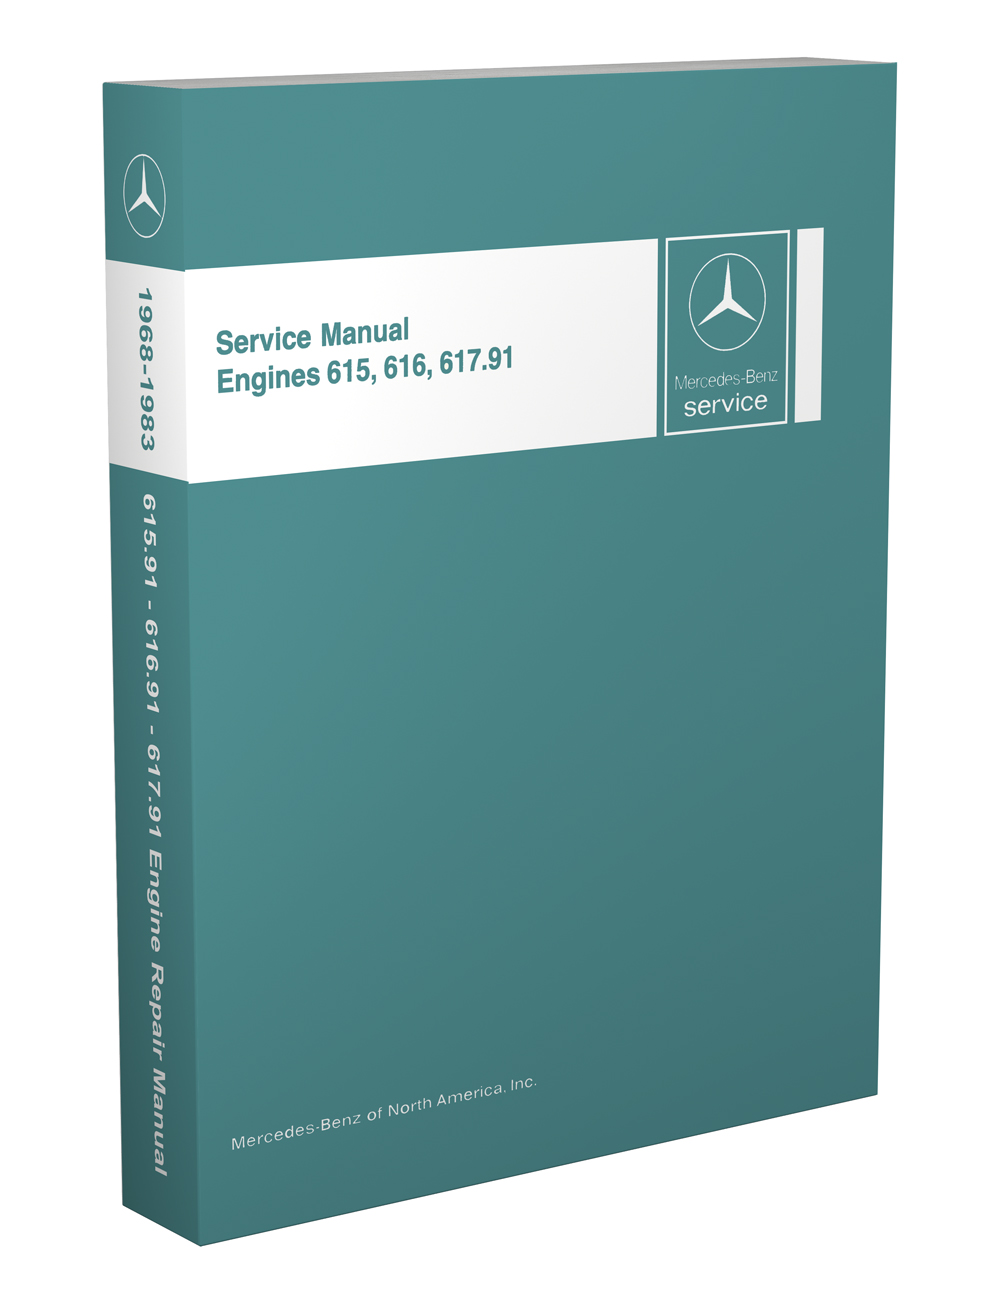 1968-81 Mercedes 615.91-616.91-617.9 Engine Repair Manual Reprint